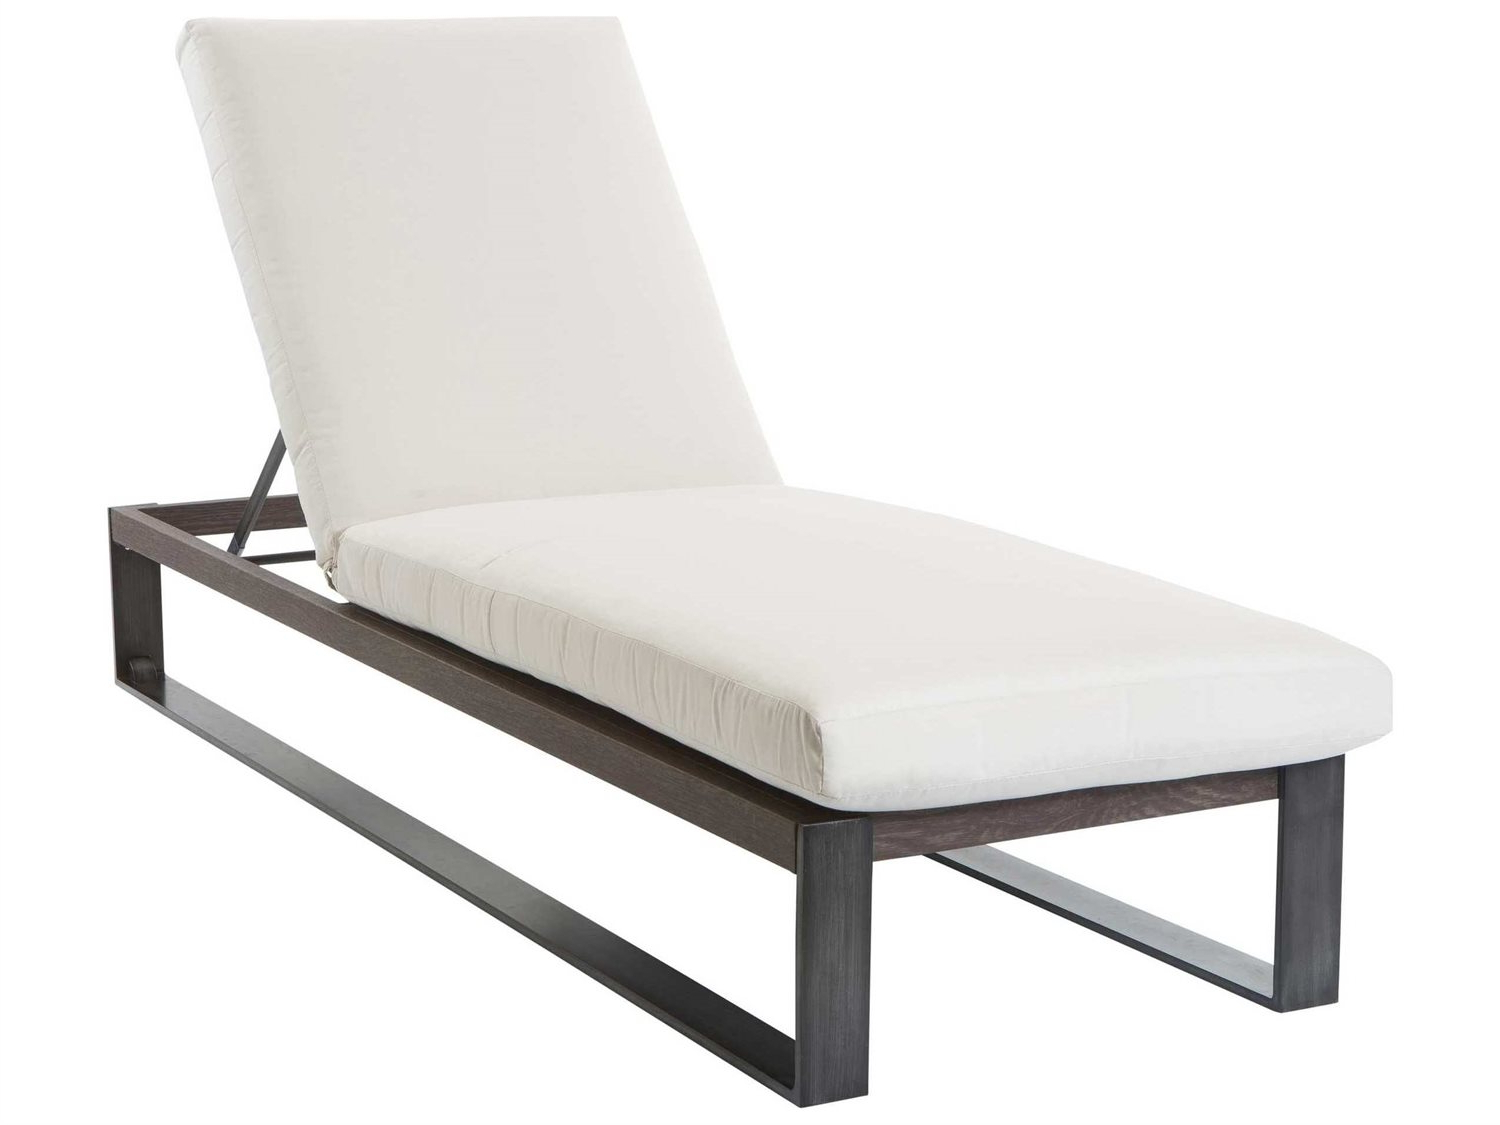 Famous Outdoor Aluminum Adjustable Chaise Lounges With Ebel Lucca Aluminum Adjustable Chaise Lounge With Wheels (View 4 of 25)